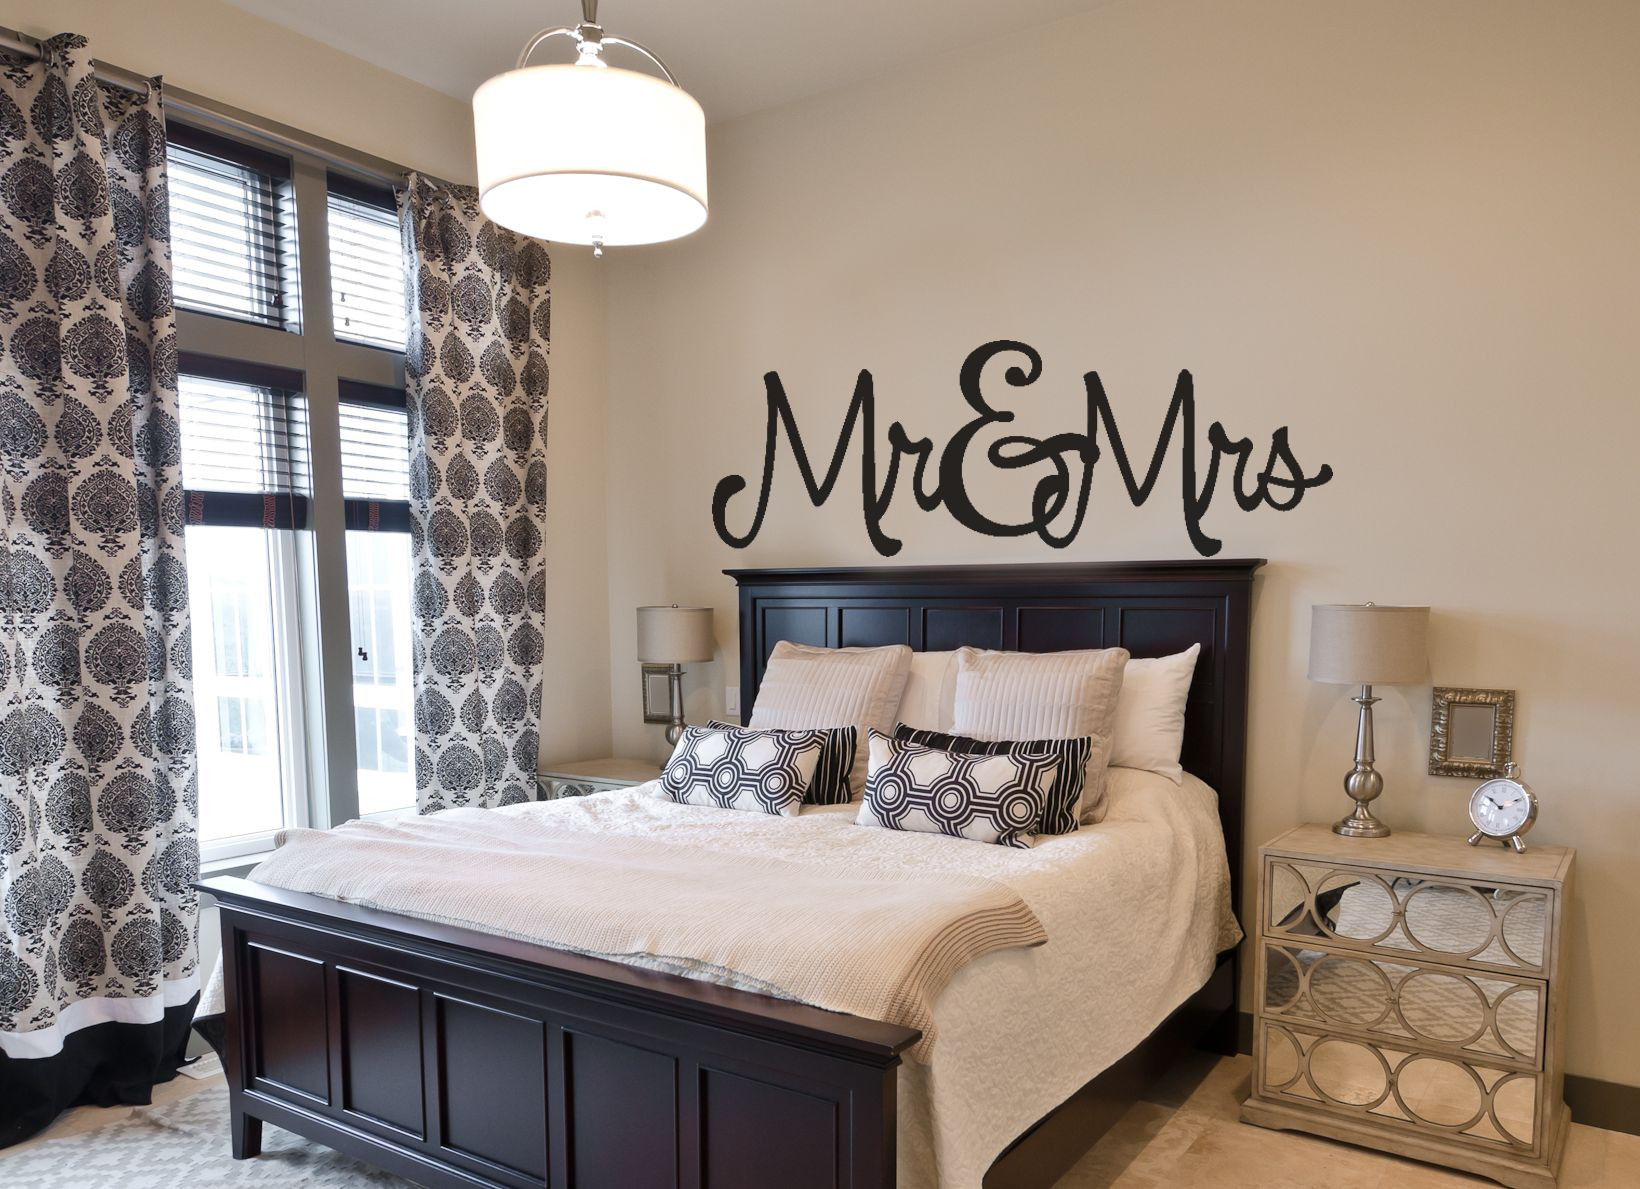 Best ideas about Wall Decor For Bedroom . Save or Pin Bedroom Wall Decal Mr & Mrs Now.